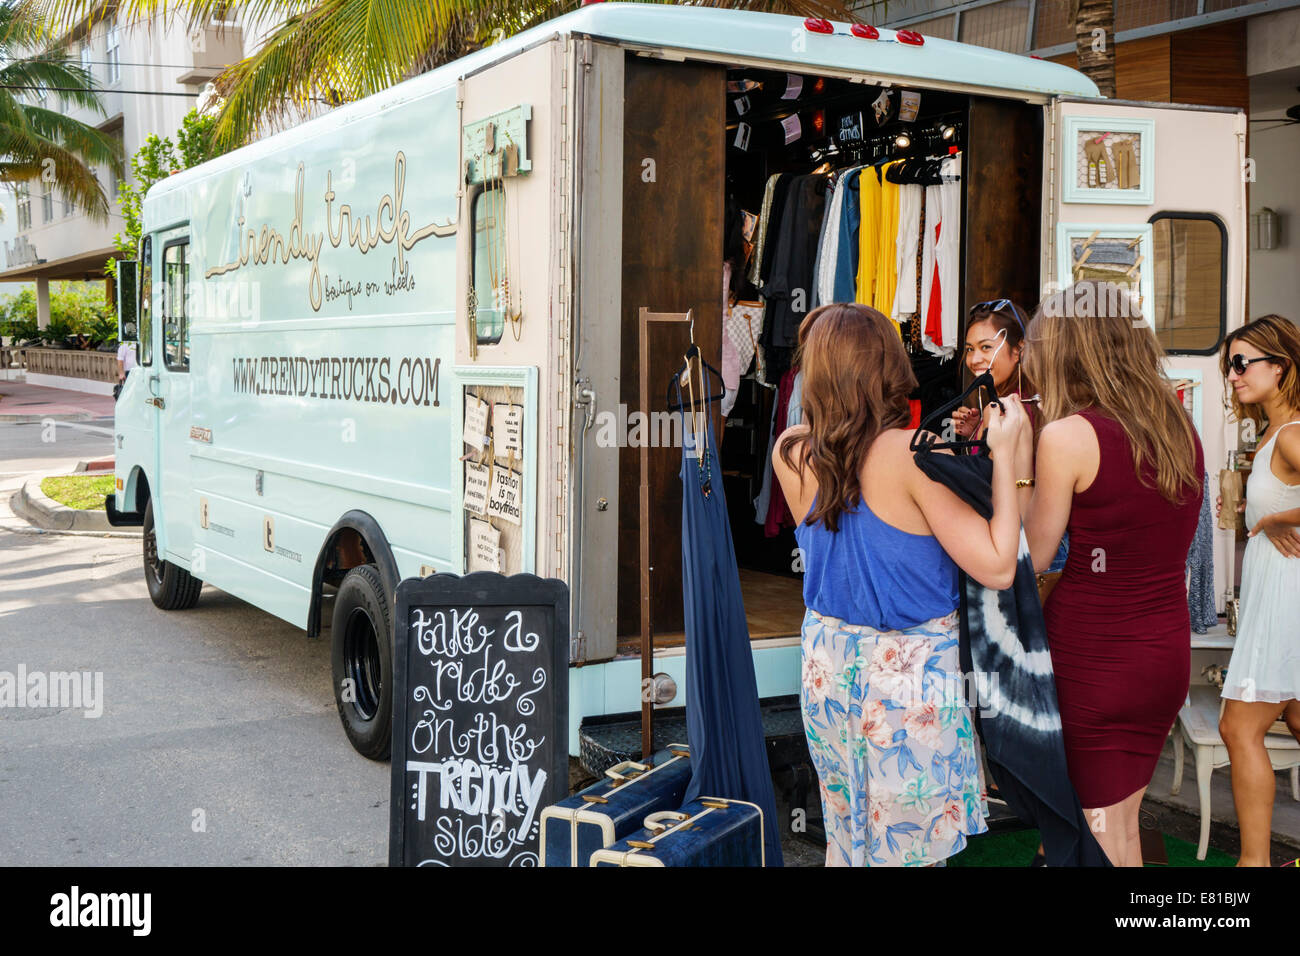 Miami Beach Florida Ocean Drive pop-up store Carrello Trendy moda abbigliamento donna vintage shopping Immagini Stock